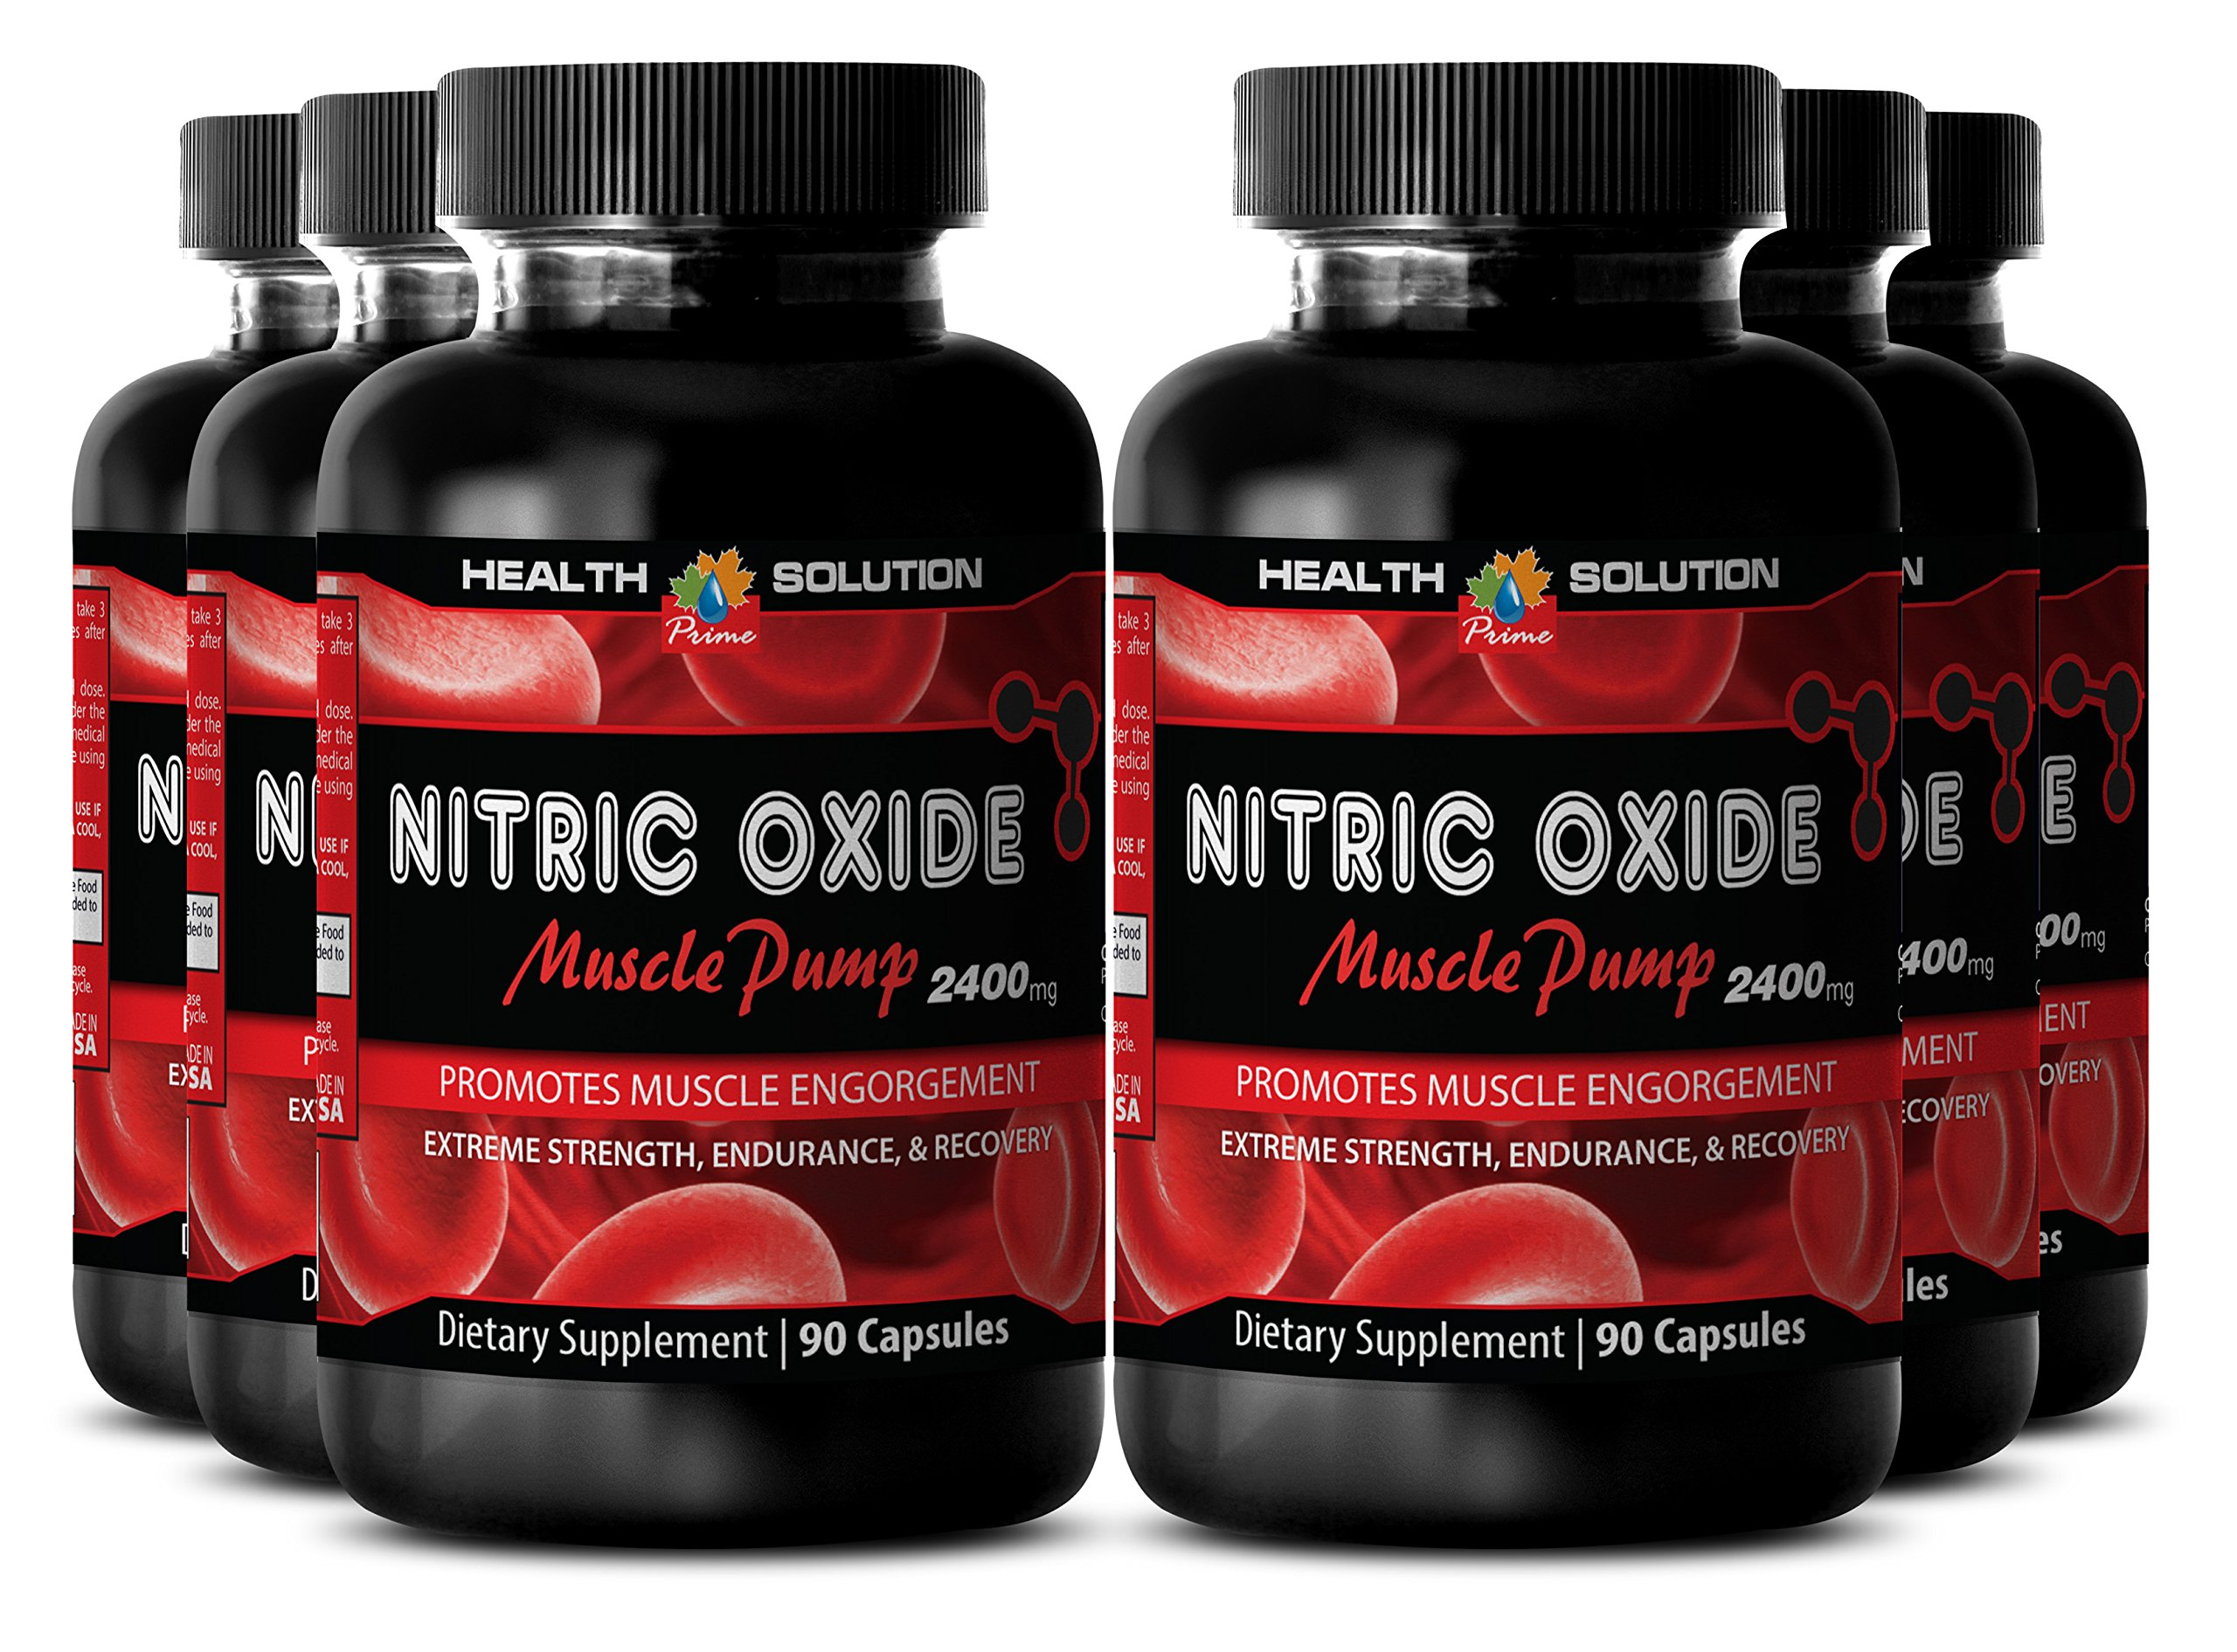 Nitric oxide supplements for sex - NITRIC OXIDE MUSCLE PUMP 2400MG - for sexual performance (6 Bottles)